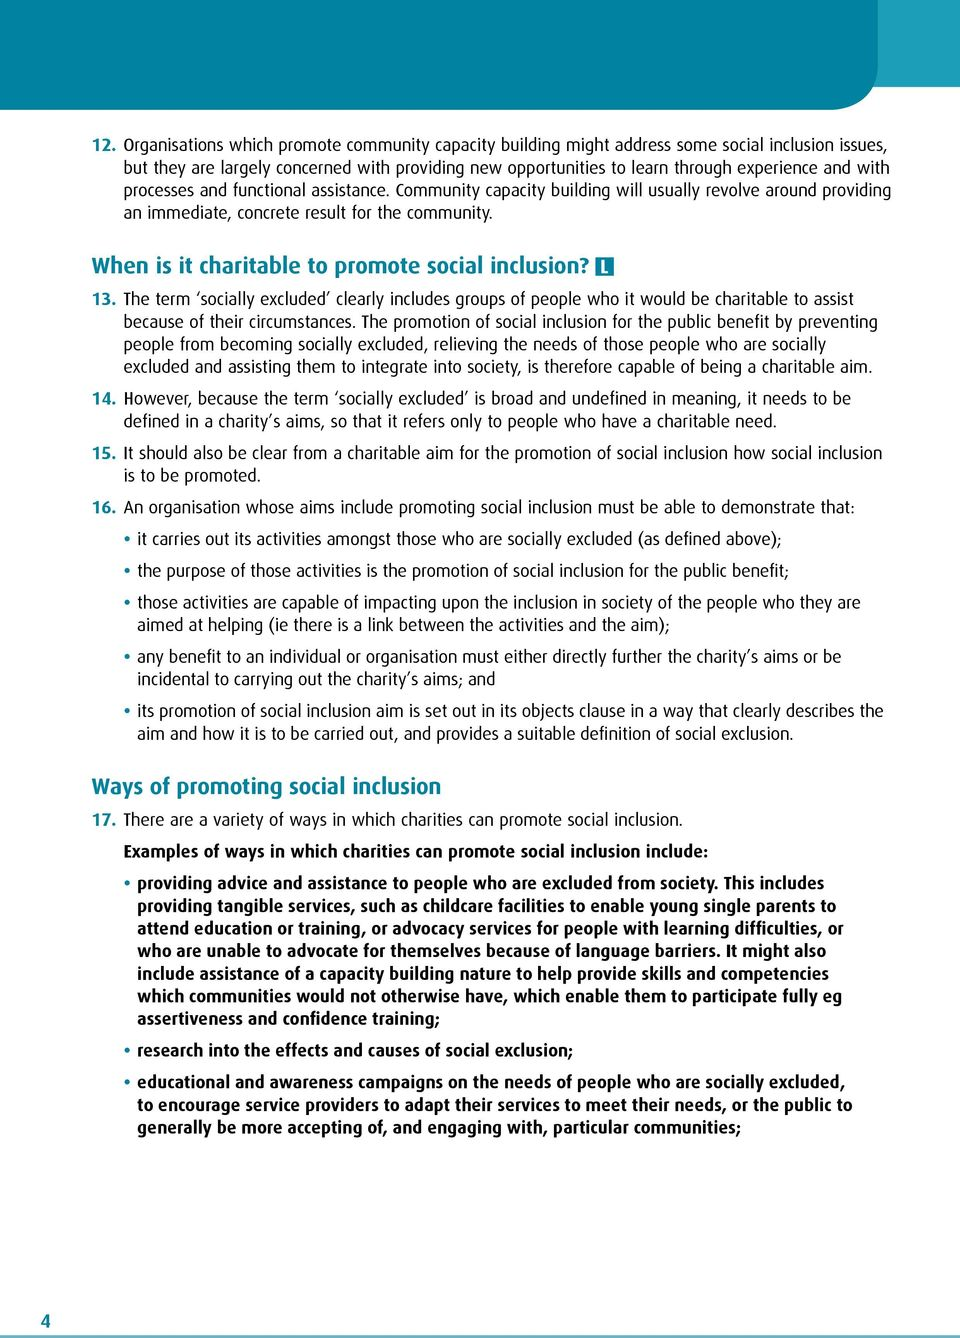 When is it charitable to promote social inclusion? 13. The term socially excluded clearly includes groups of people who it would be charitable to assist because of their circumstances.